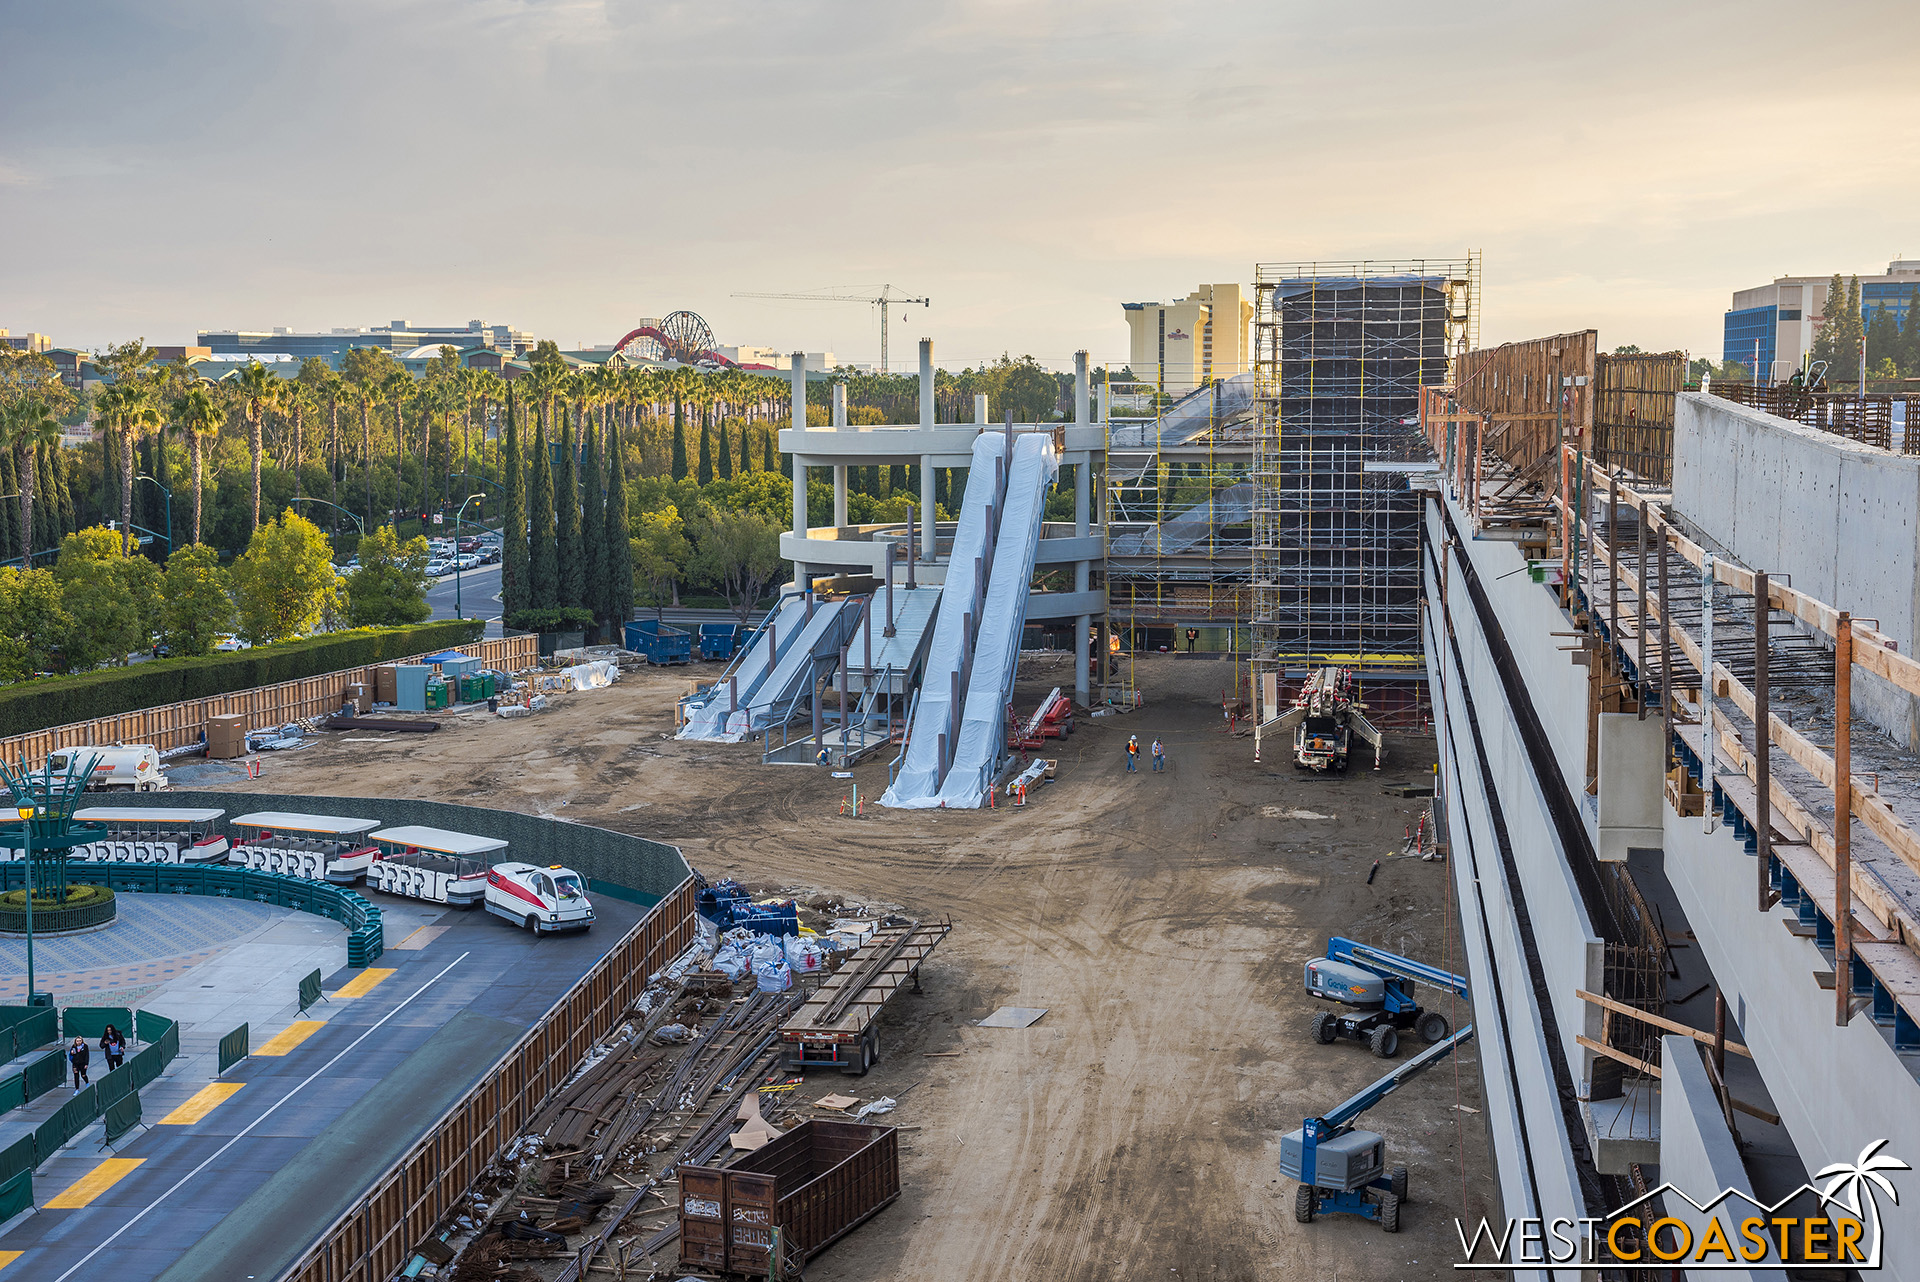 Over on the southeast corner of the new parking structure, the escalator promenade and elevator tower continue to progress.